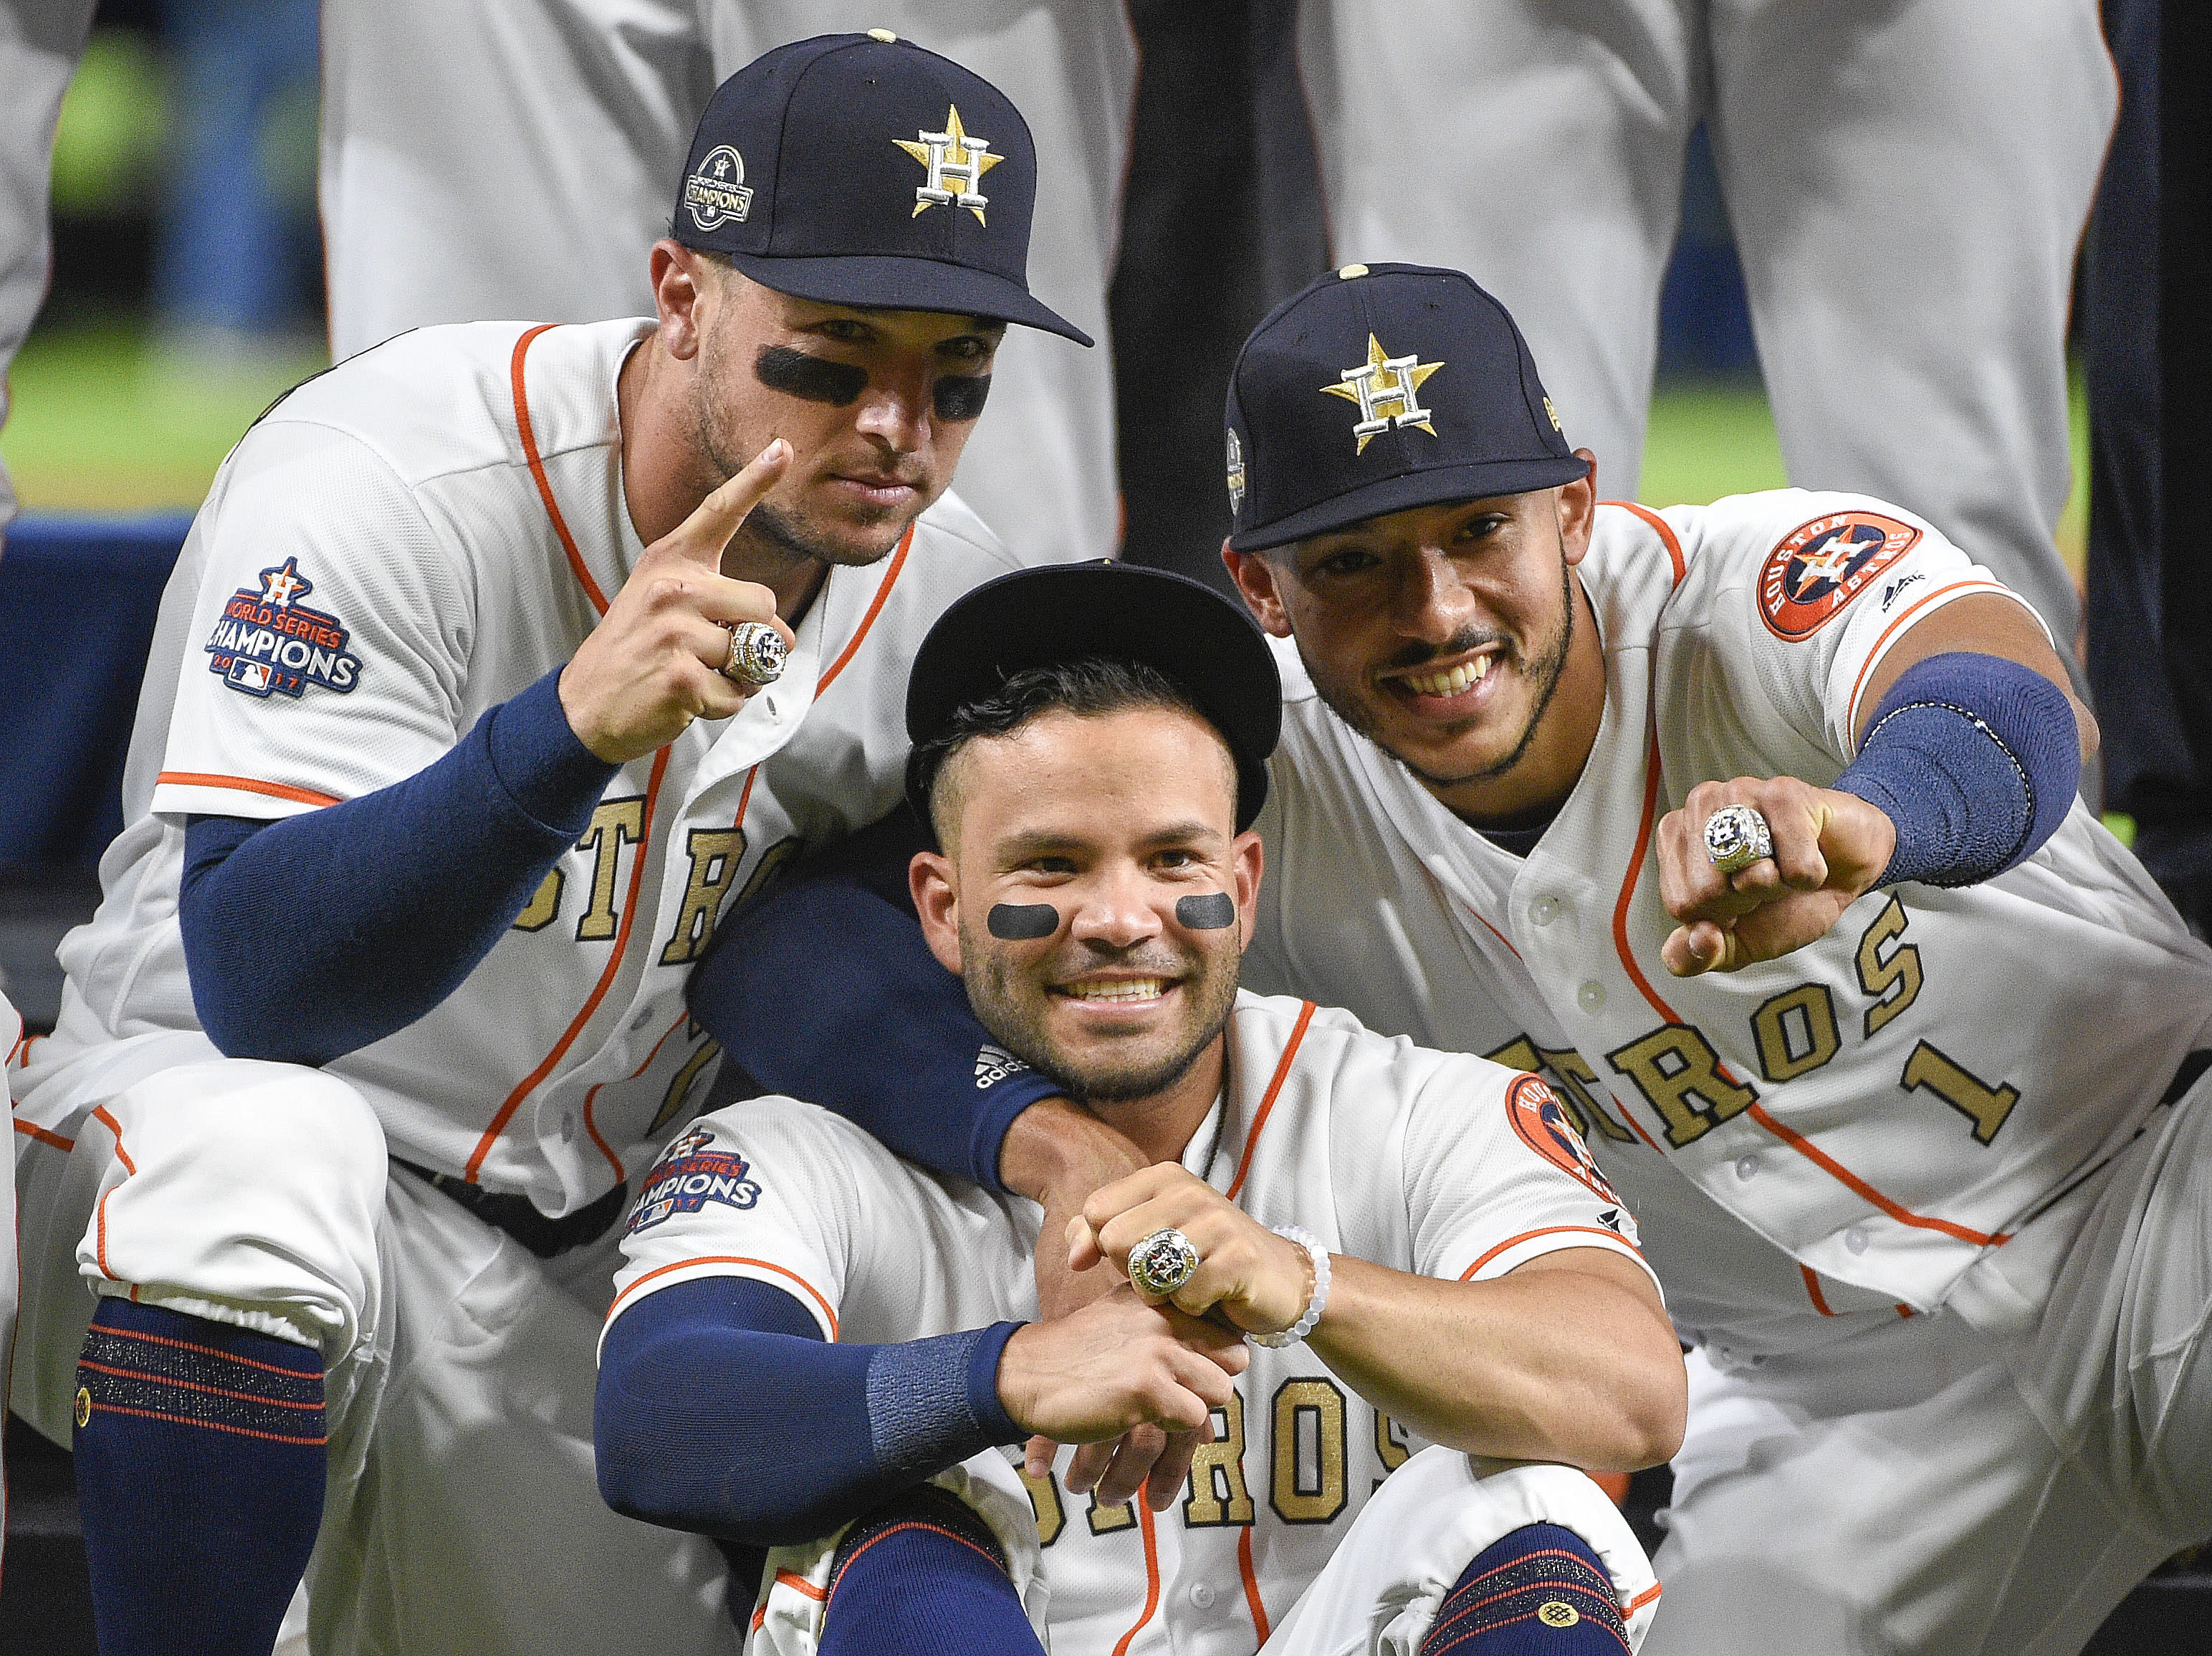 Power Ranking The Opening Day Roster Part 2